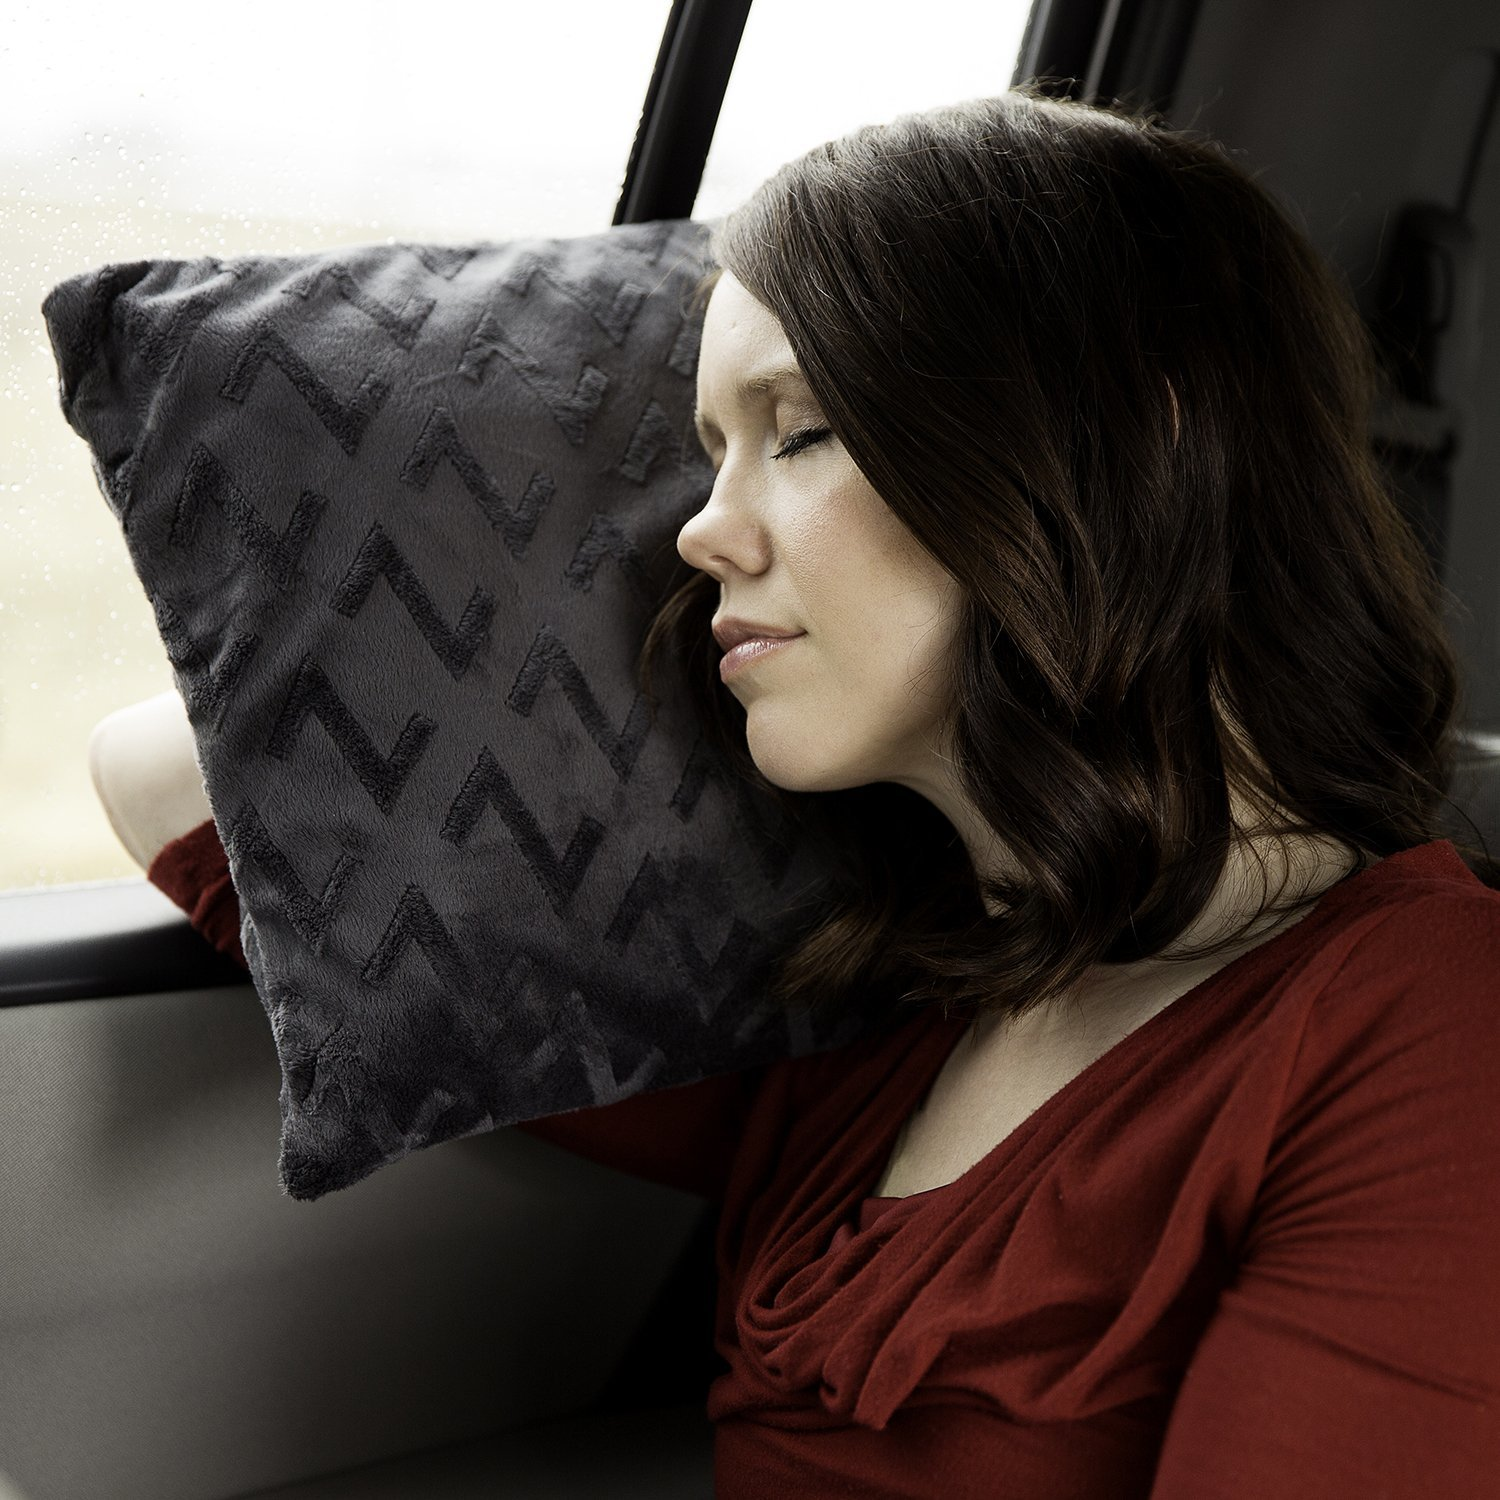 Malouf Z travel memory foam pillow